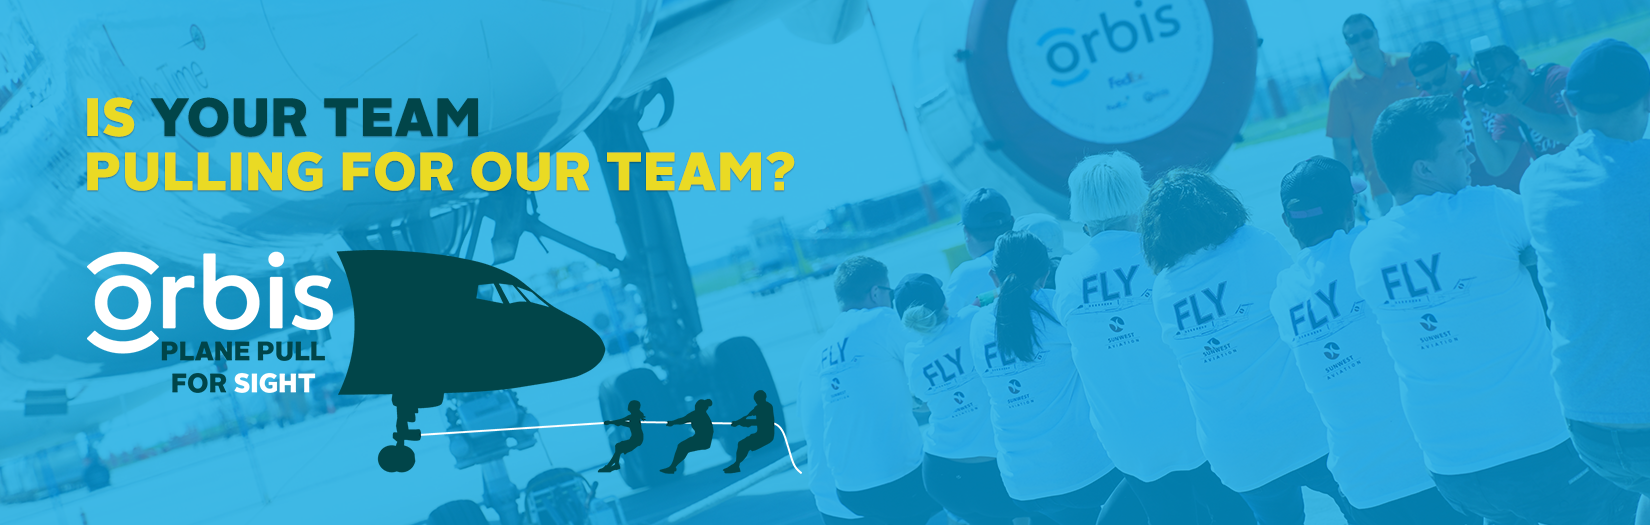 Plane Pull for Sight 2019: Toronto, Calgary, Vancouver